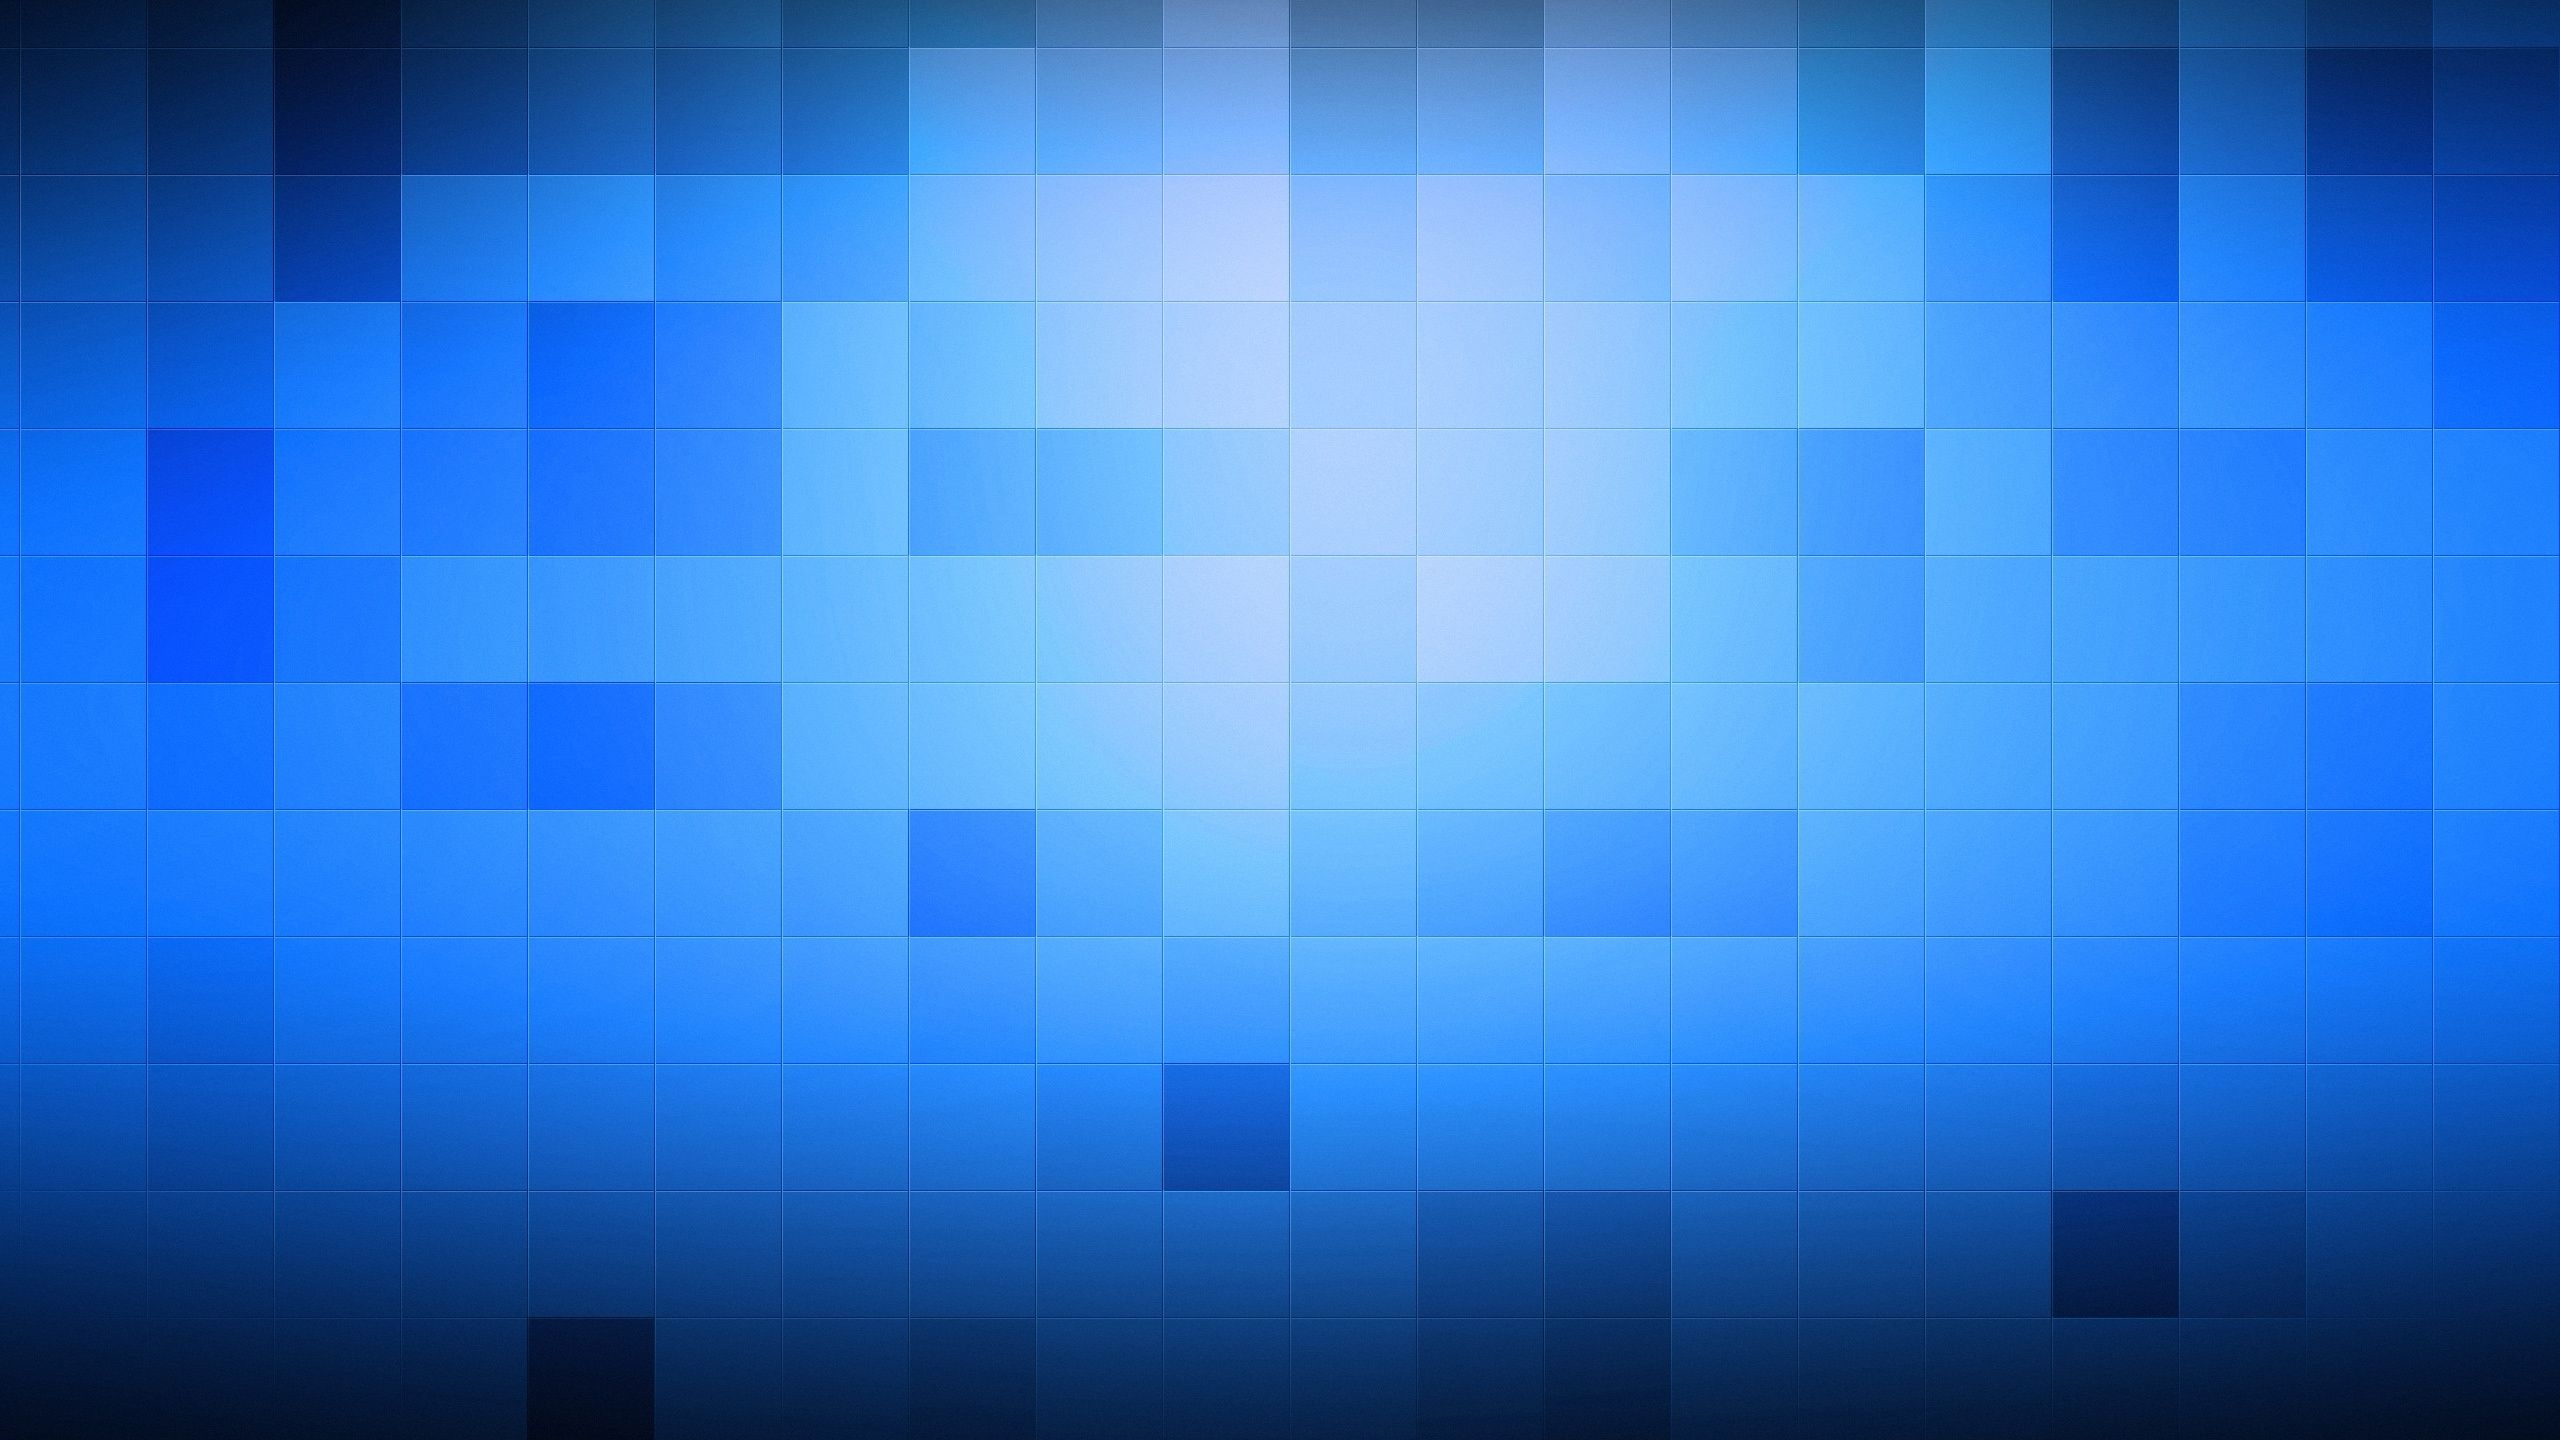 Pixel Backgrounds wallpaper | 2560x1440 | #10866